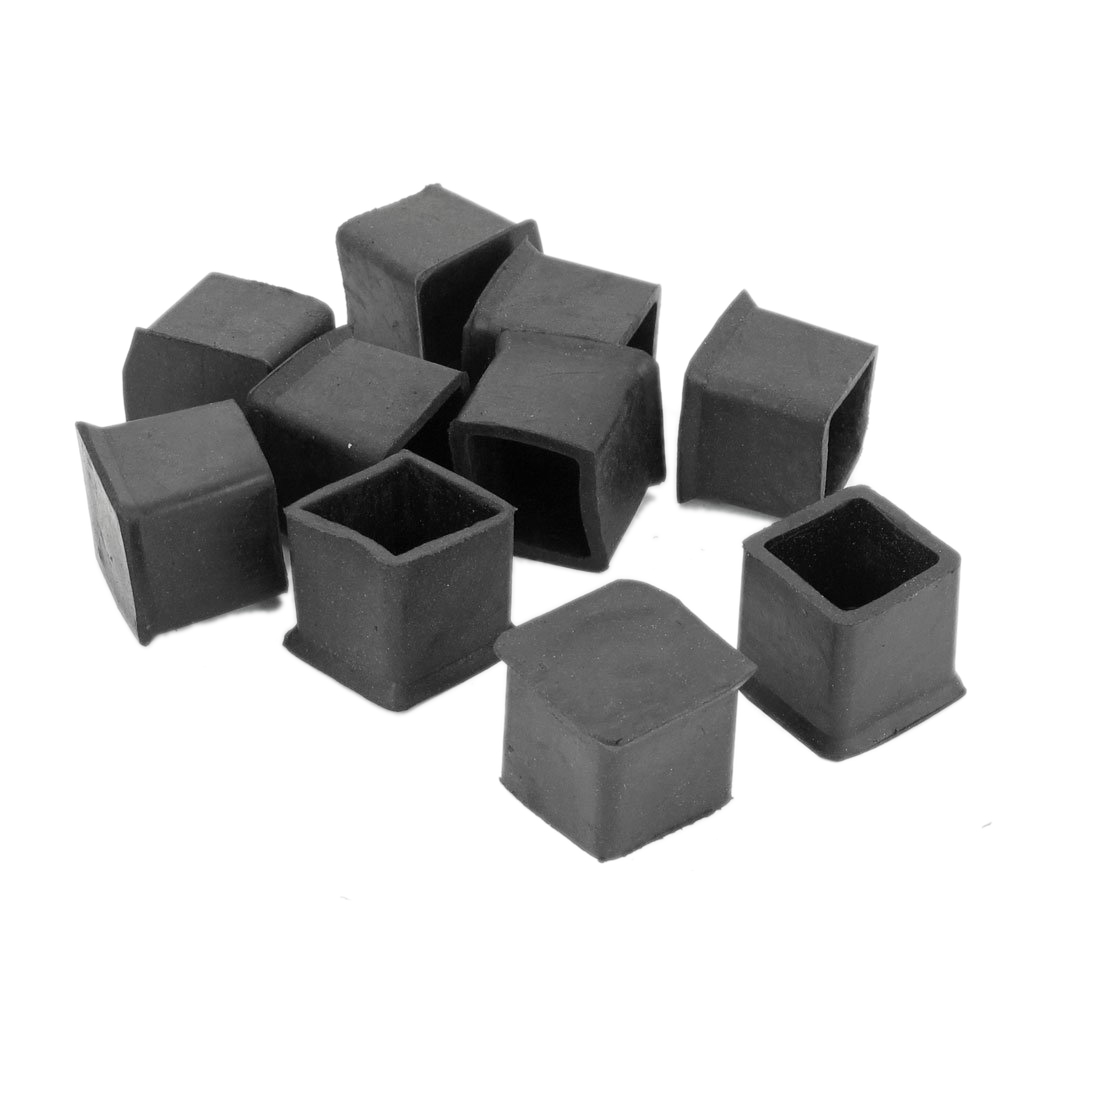 TFBC 10 Pcs Rubber 25mm x 25mm Furniture Chair Legs Covers Protectors